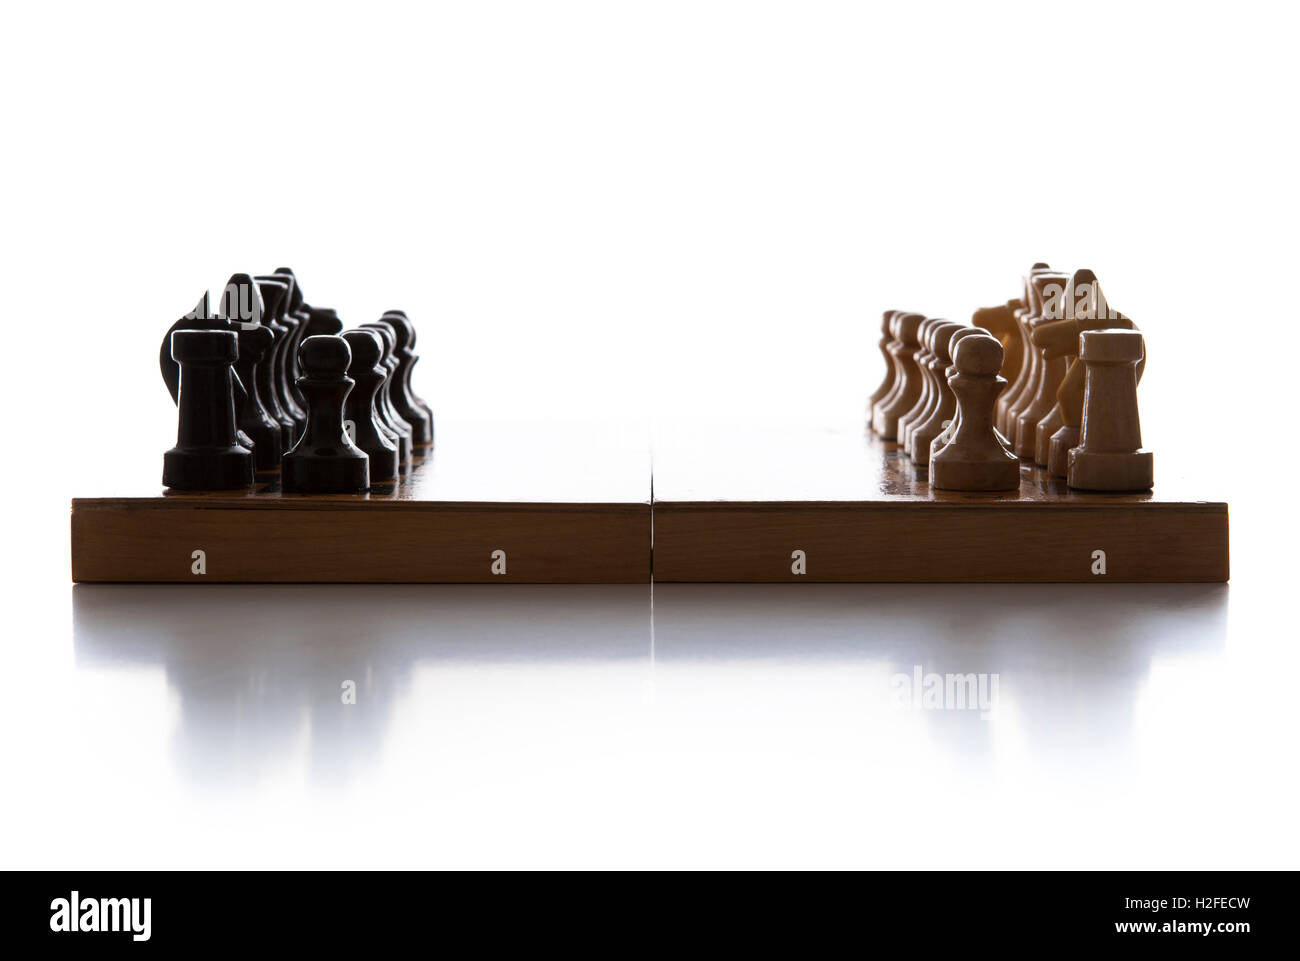 chess pieces on the board - Stock Image